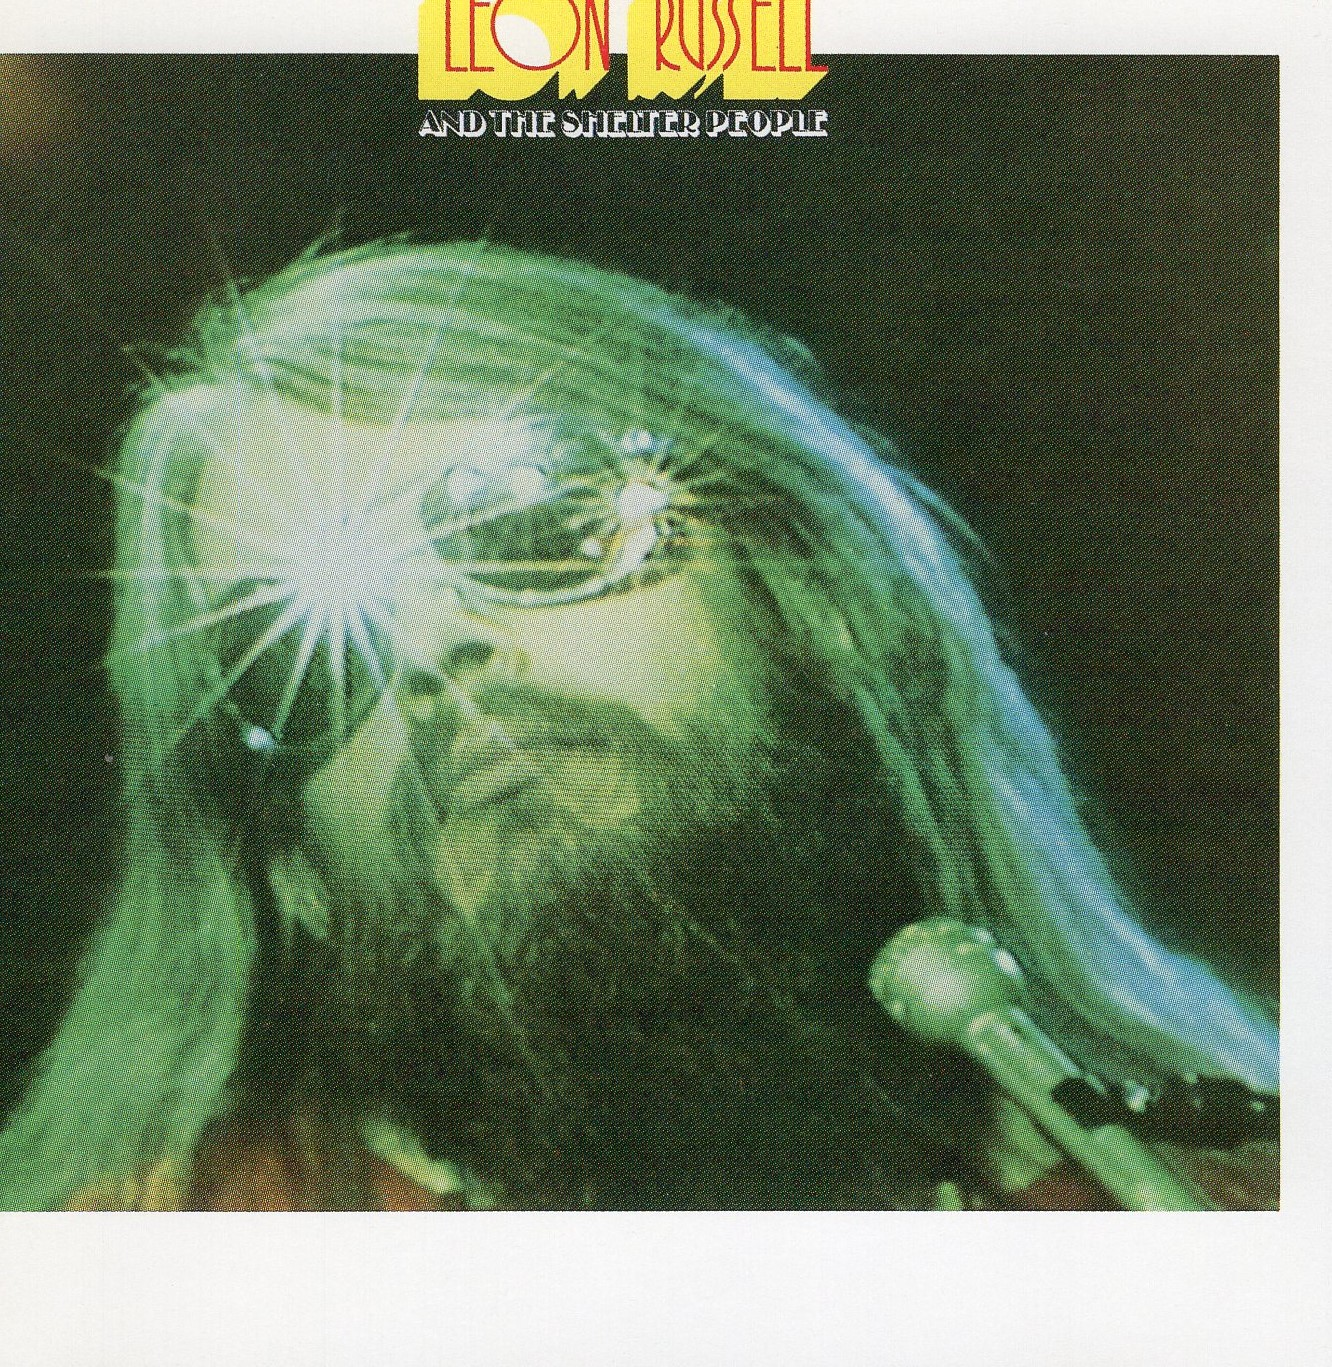 """The Schelter People"" Leon Russell"